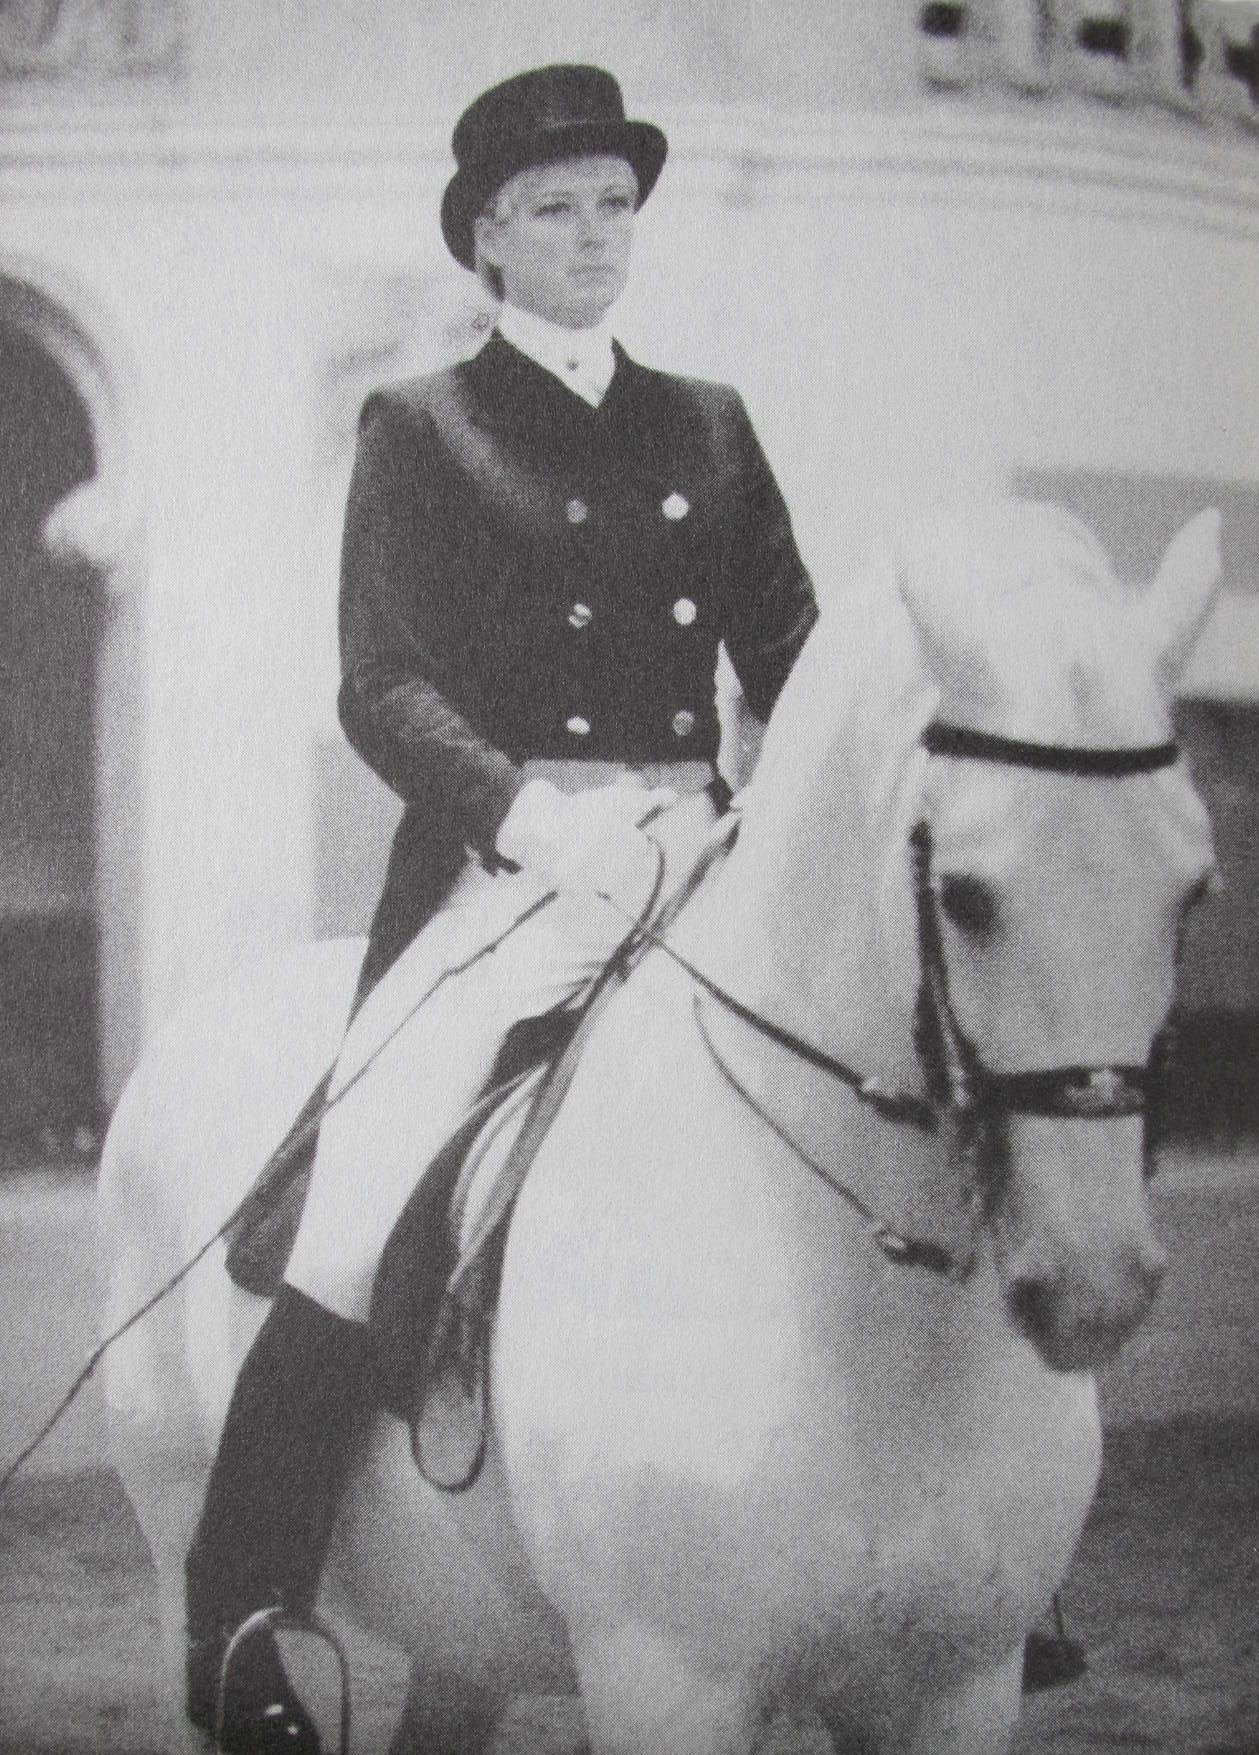 Diana Mukpo, Spanish Riding School